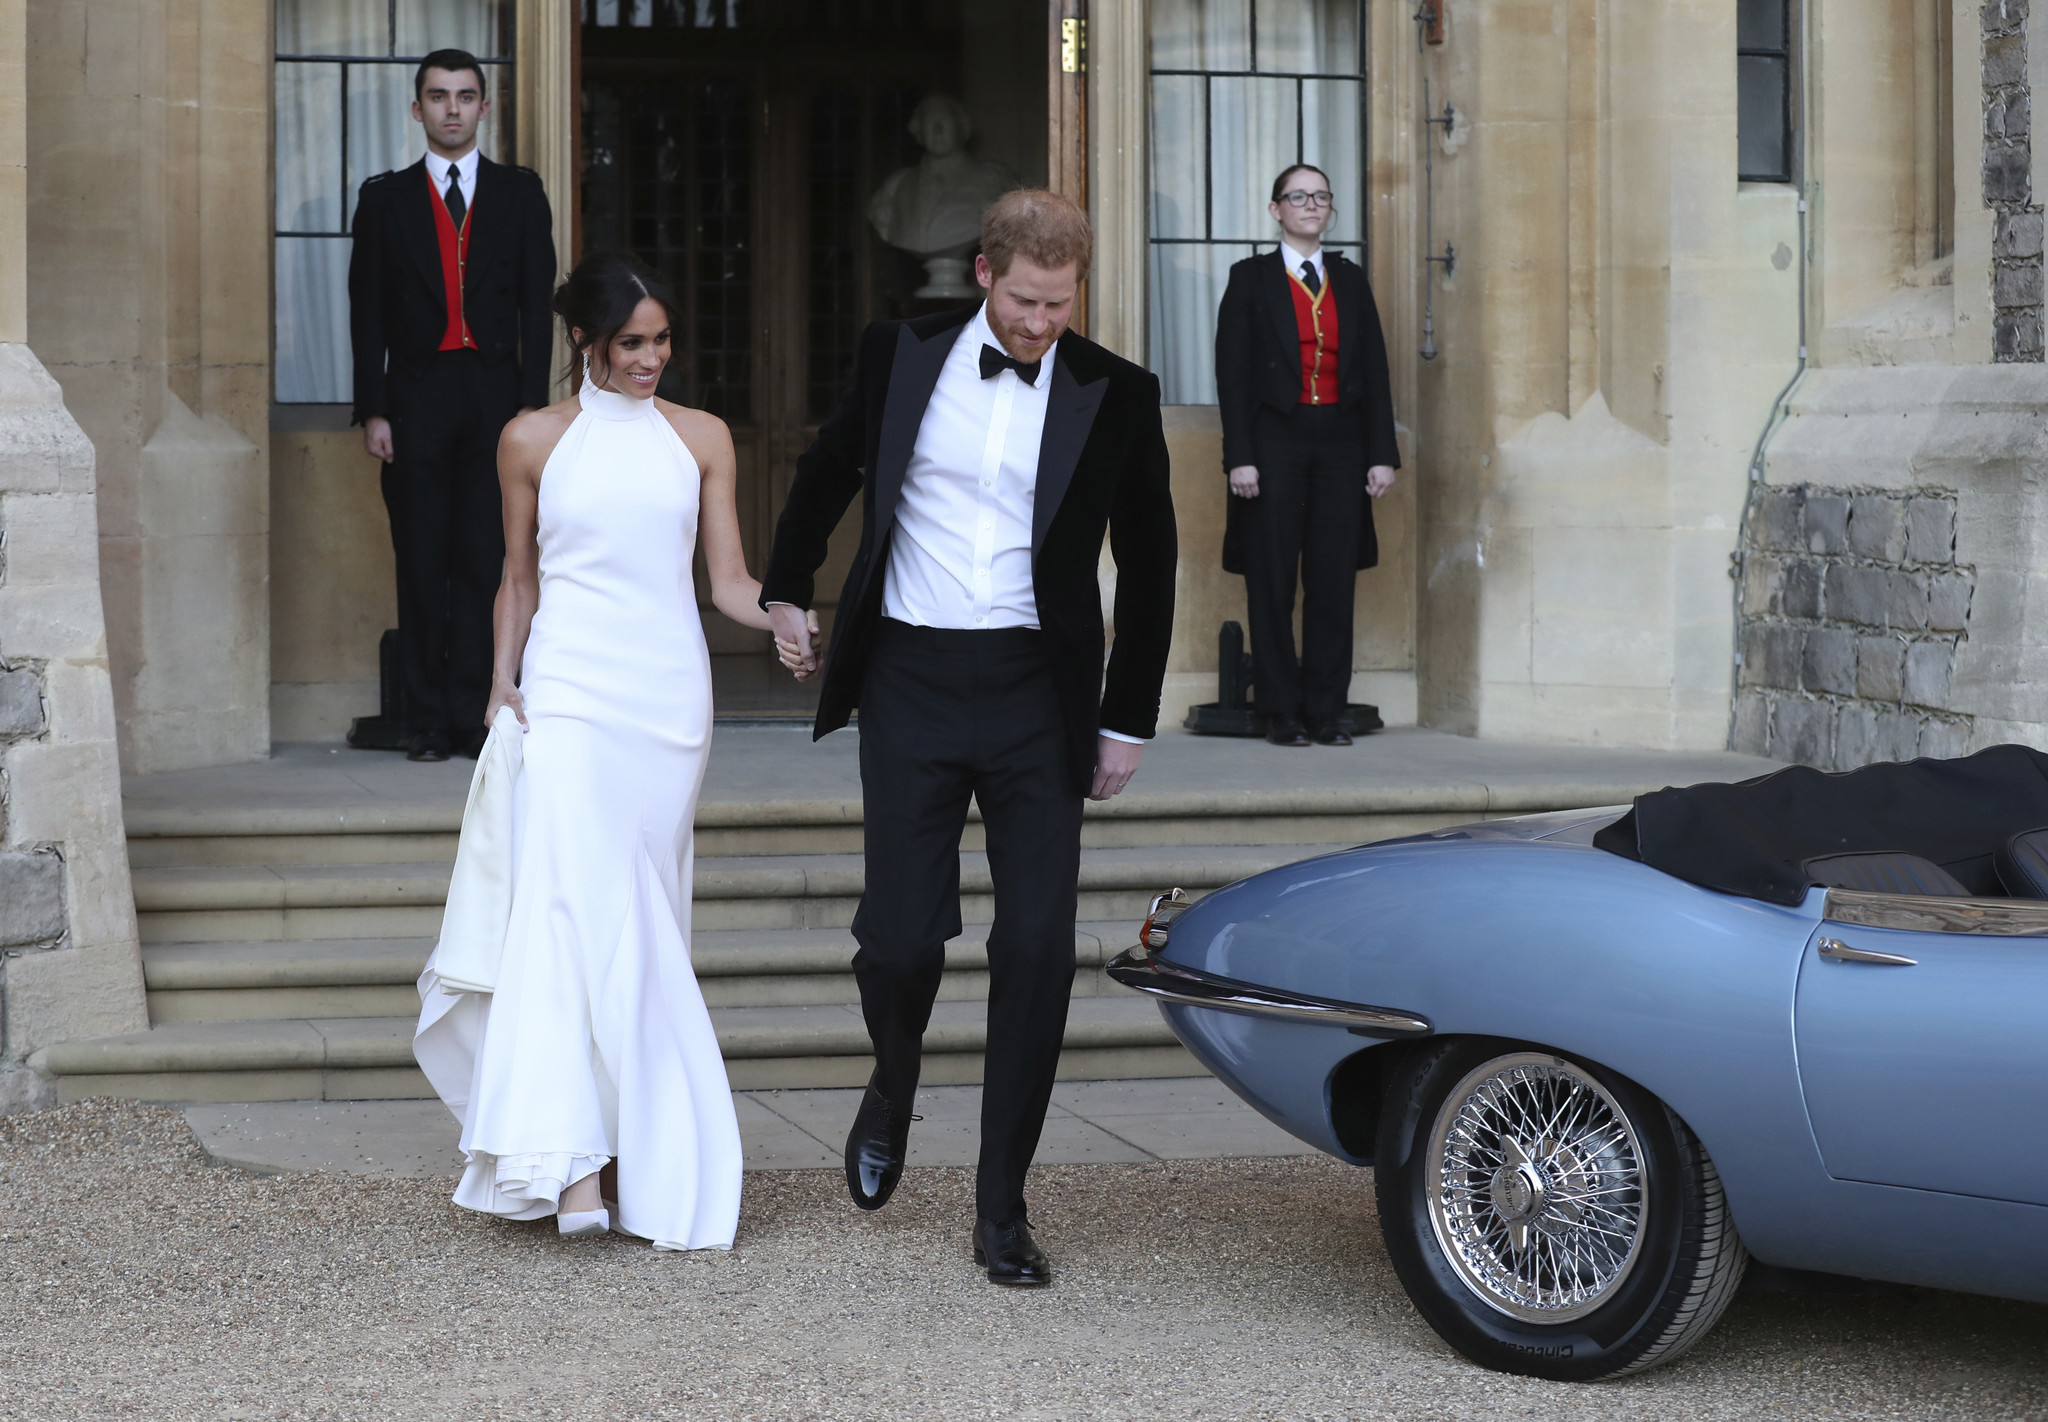 The newly married Duke and Duchess of Sussex, Meghan Markle and Prince Harry, leave Windsor Castle a